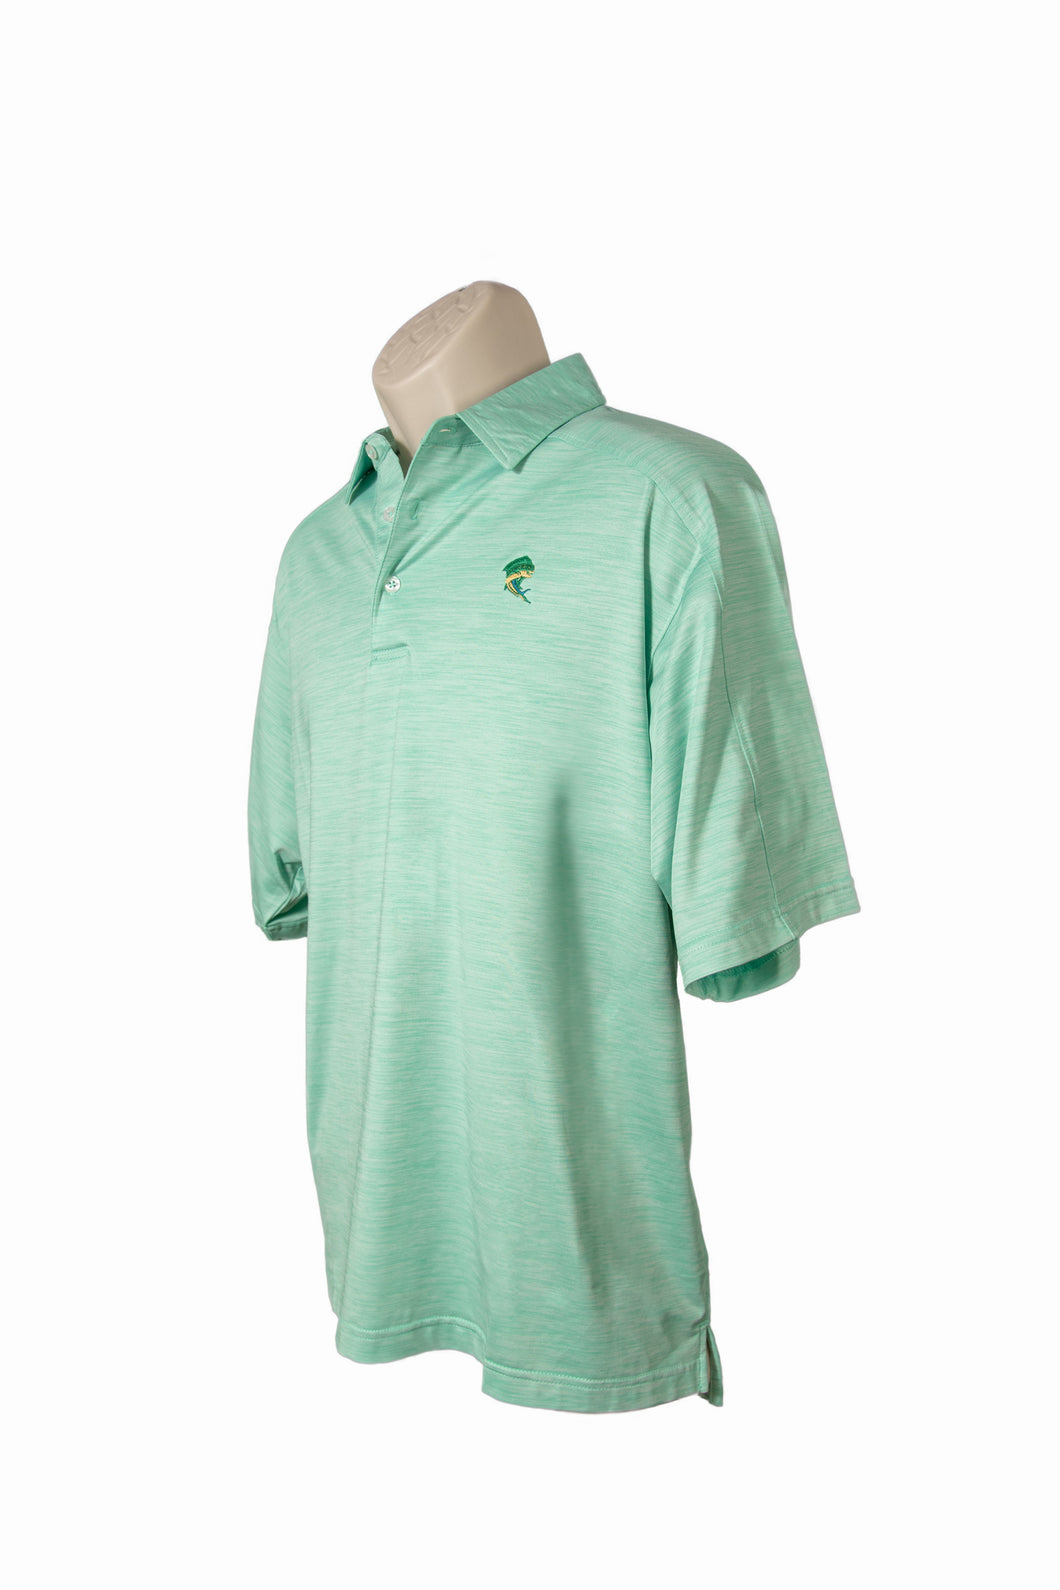 Heather Green Polo Style Shirt